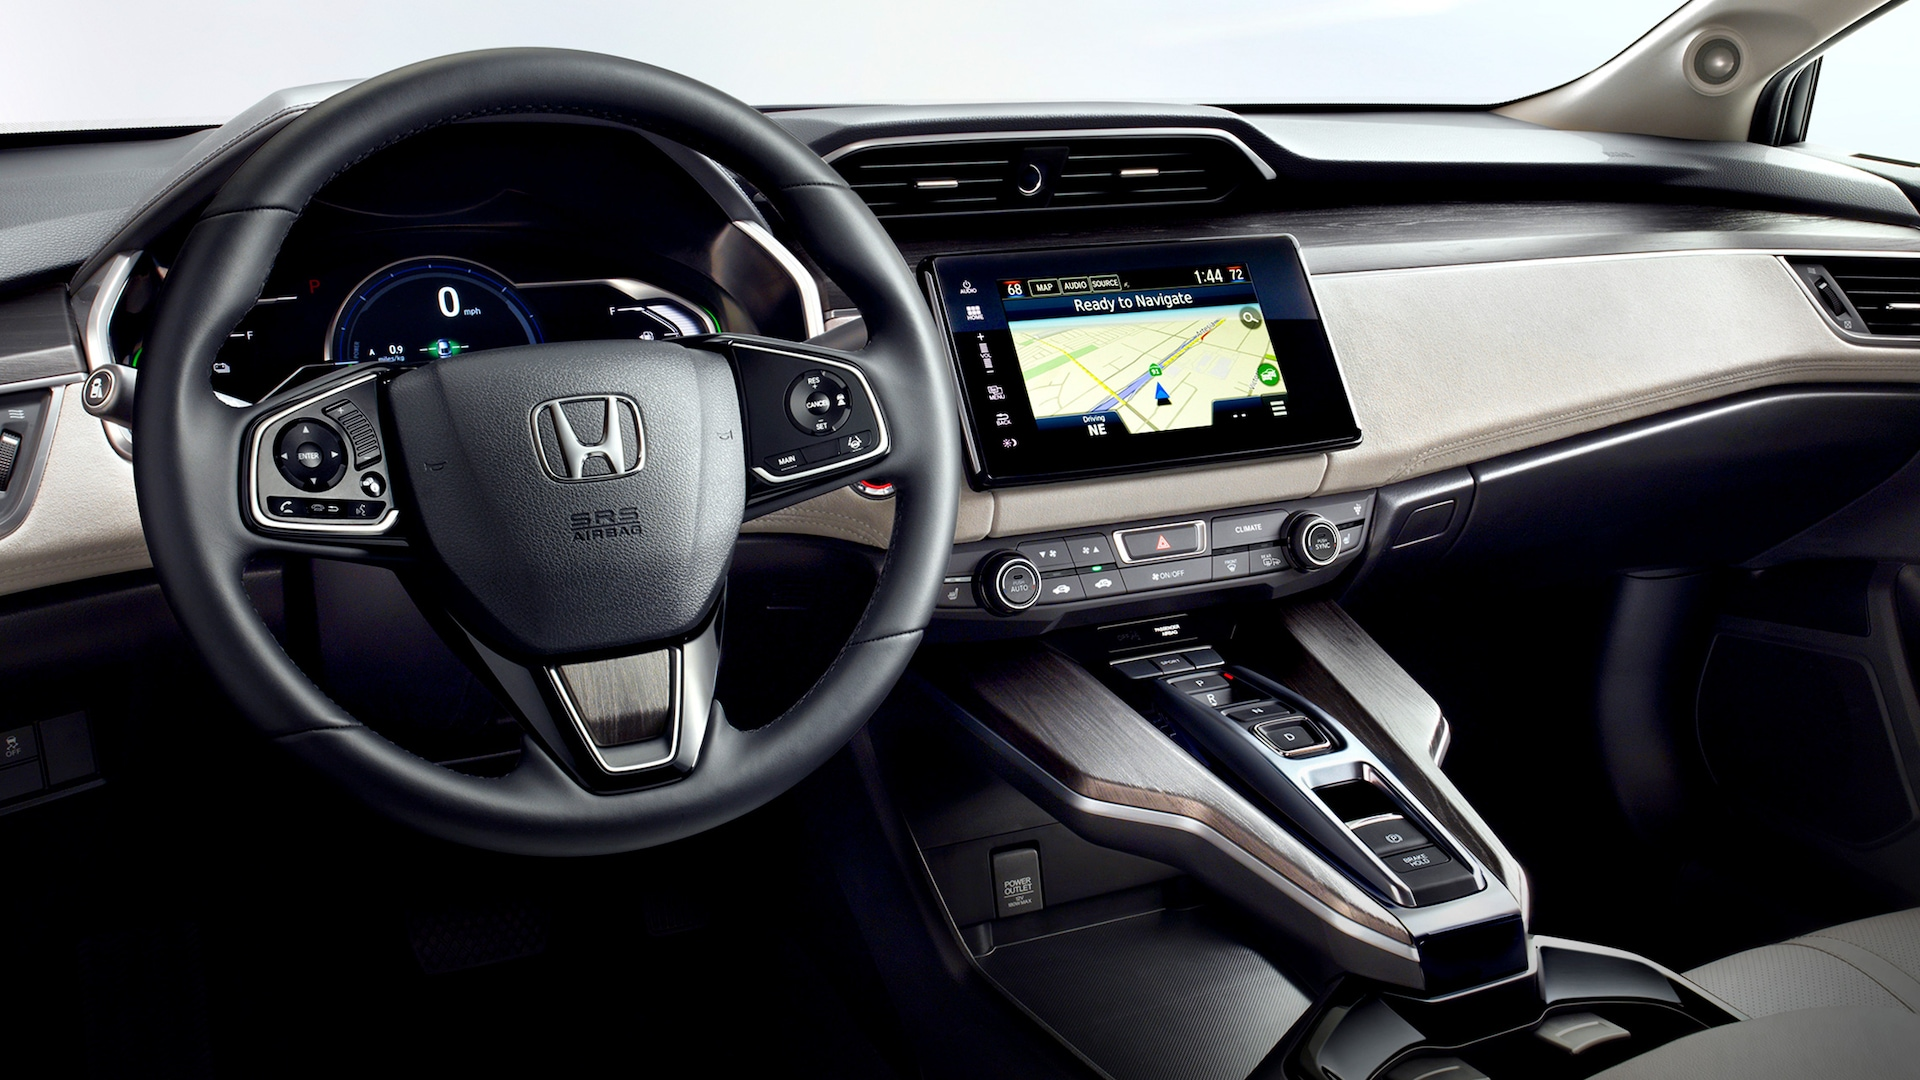 Detail of the steering wheel and interior consoles in the 2021 Honda Clarity Fuel Cell.